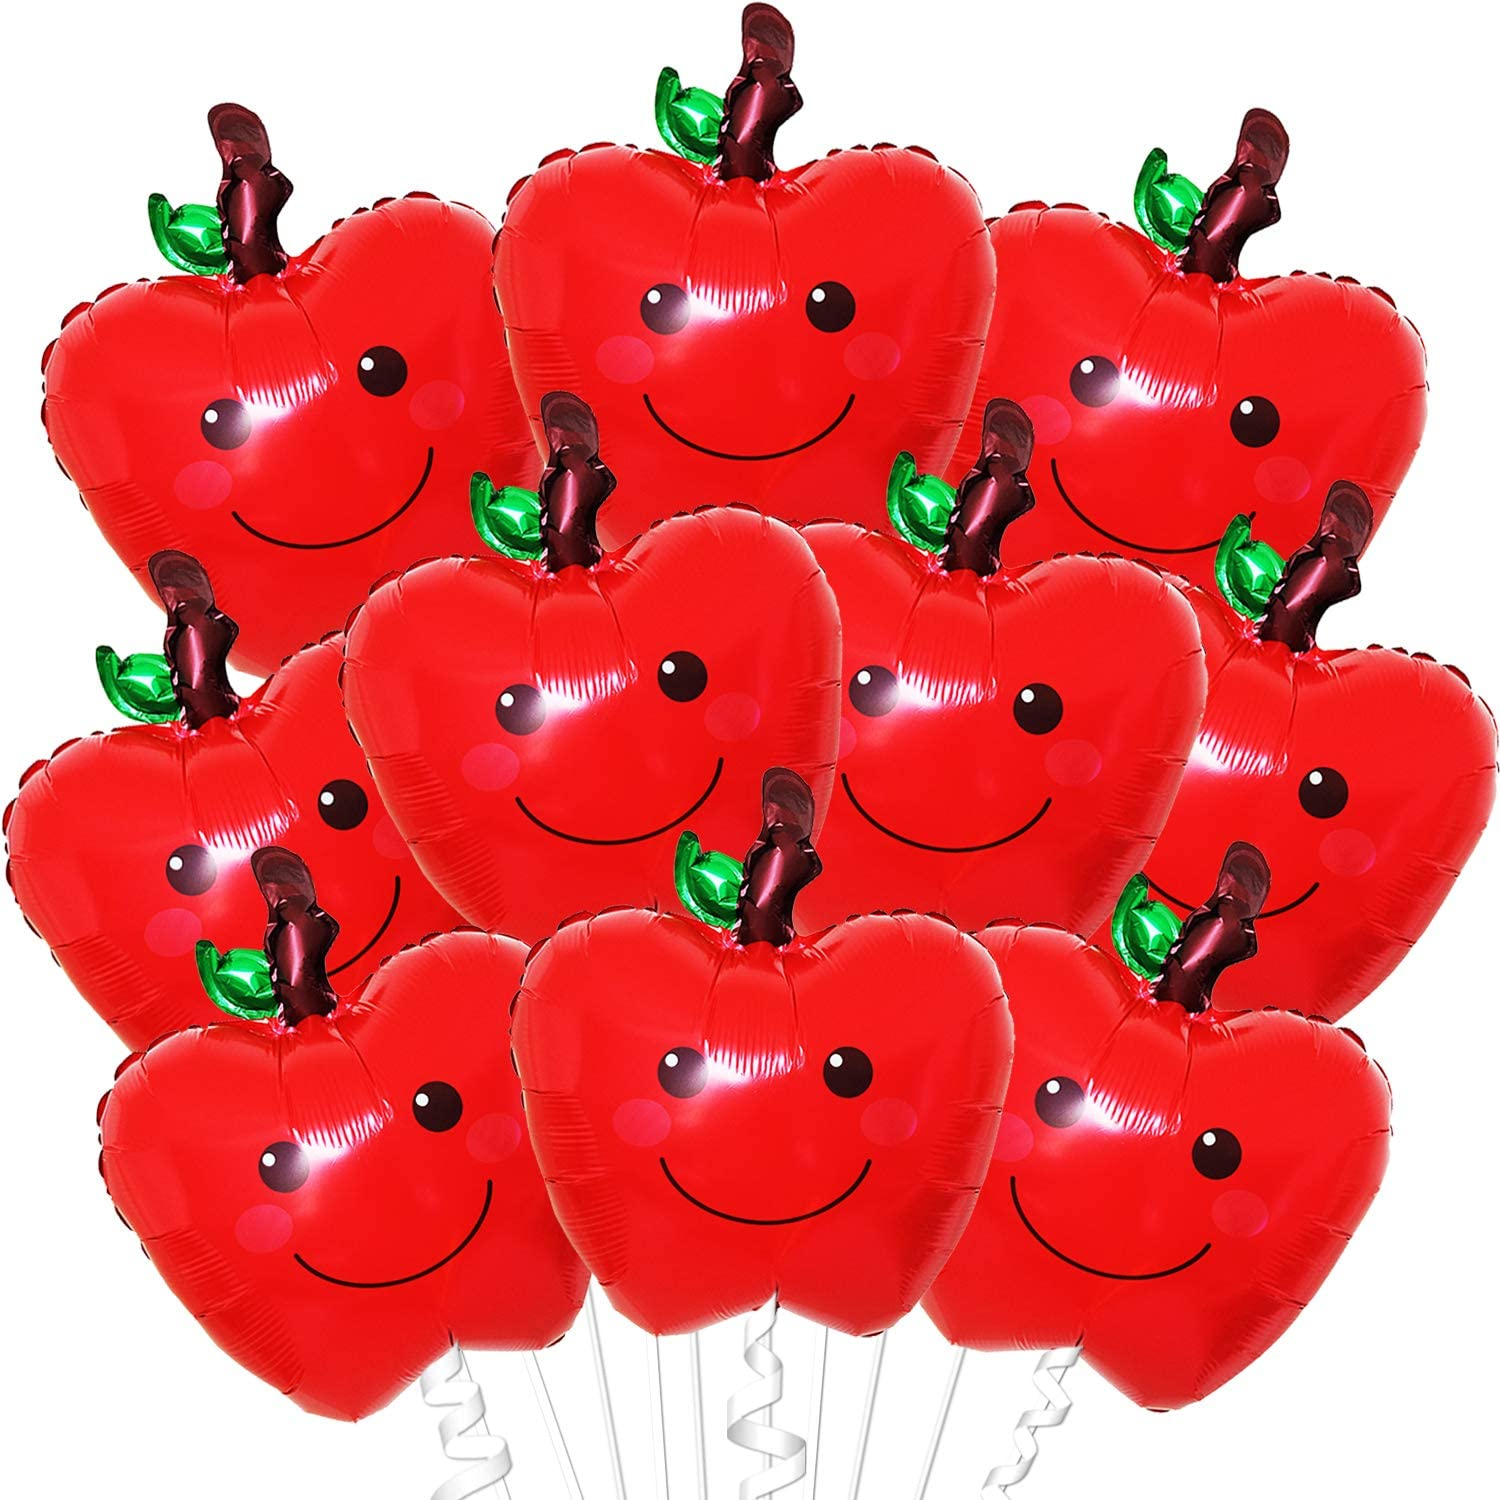 Apple Party Decorations - Large, Pack of 10 | Red Apple Mylar Balloons | Back to School Decorations | Farmers Market Decoration | Fruit Balloons Décor | Apple Themed Decorations Party Supplies